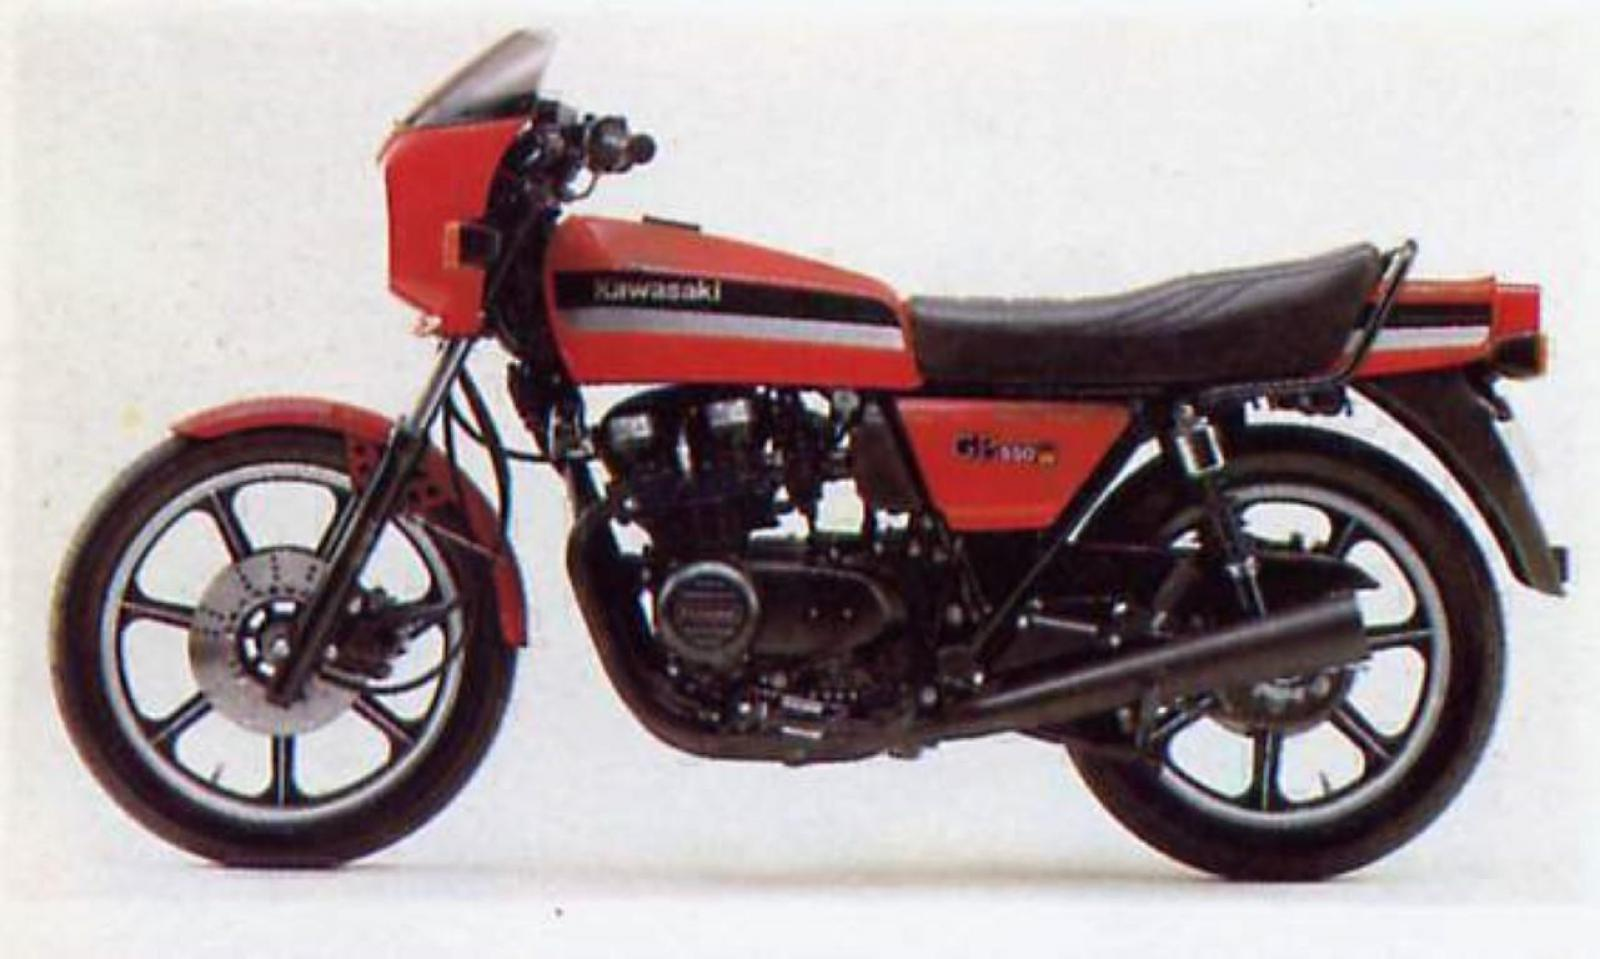 Kawasaki Gpz 550 Pics Specs And List Of Seriess By Year